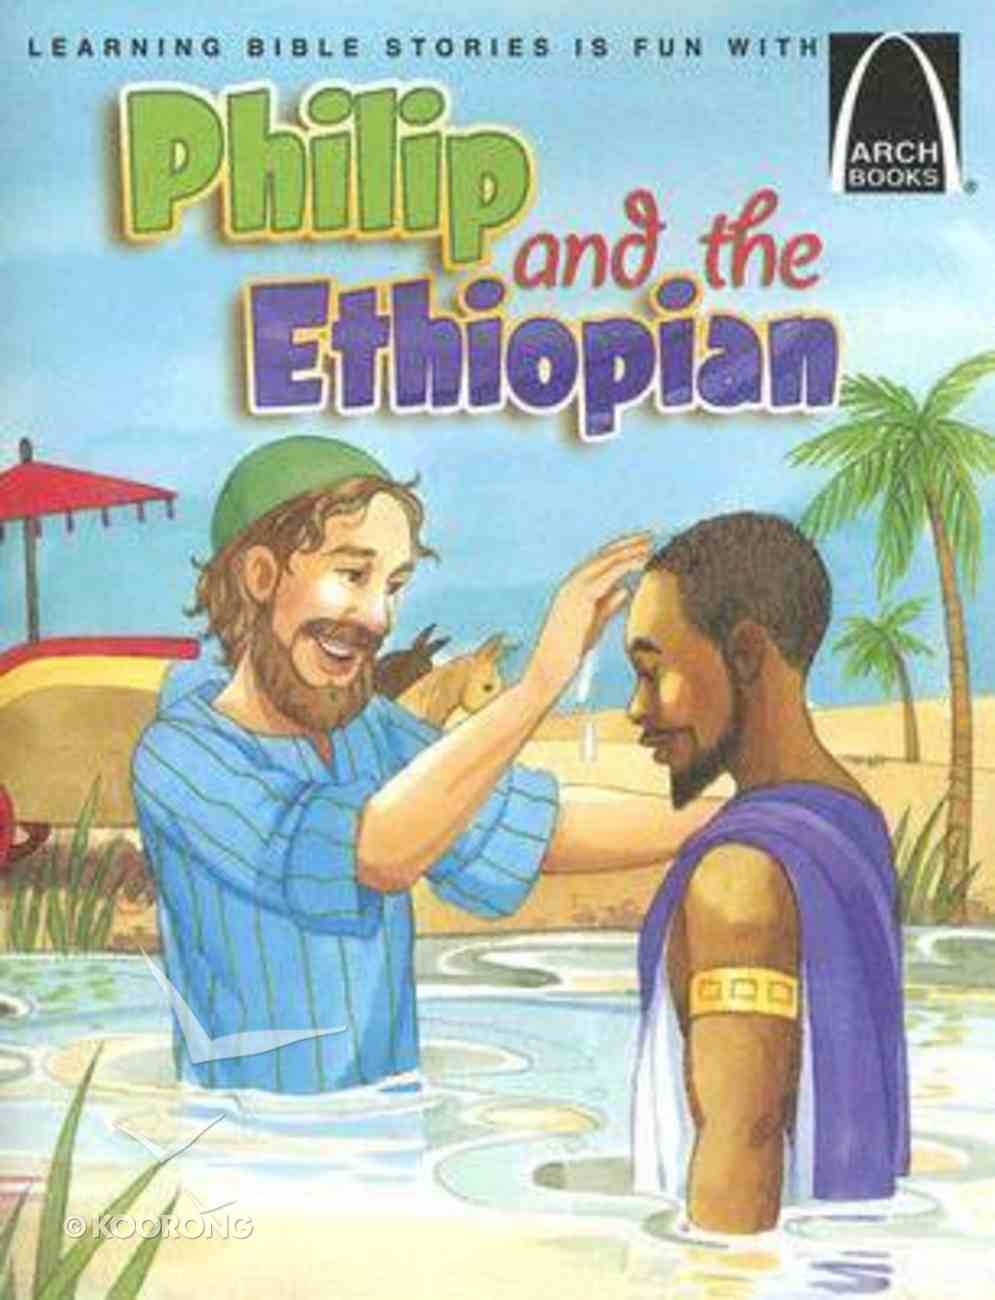 Philip and the Ethiopian (Arch Books Series) Paperback